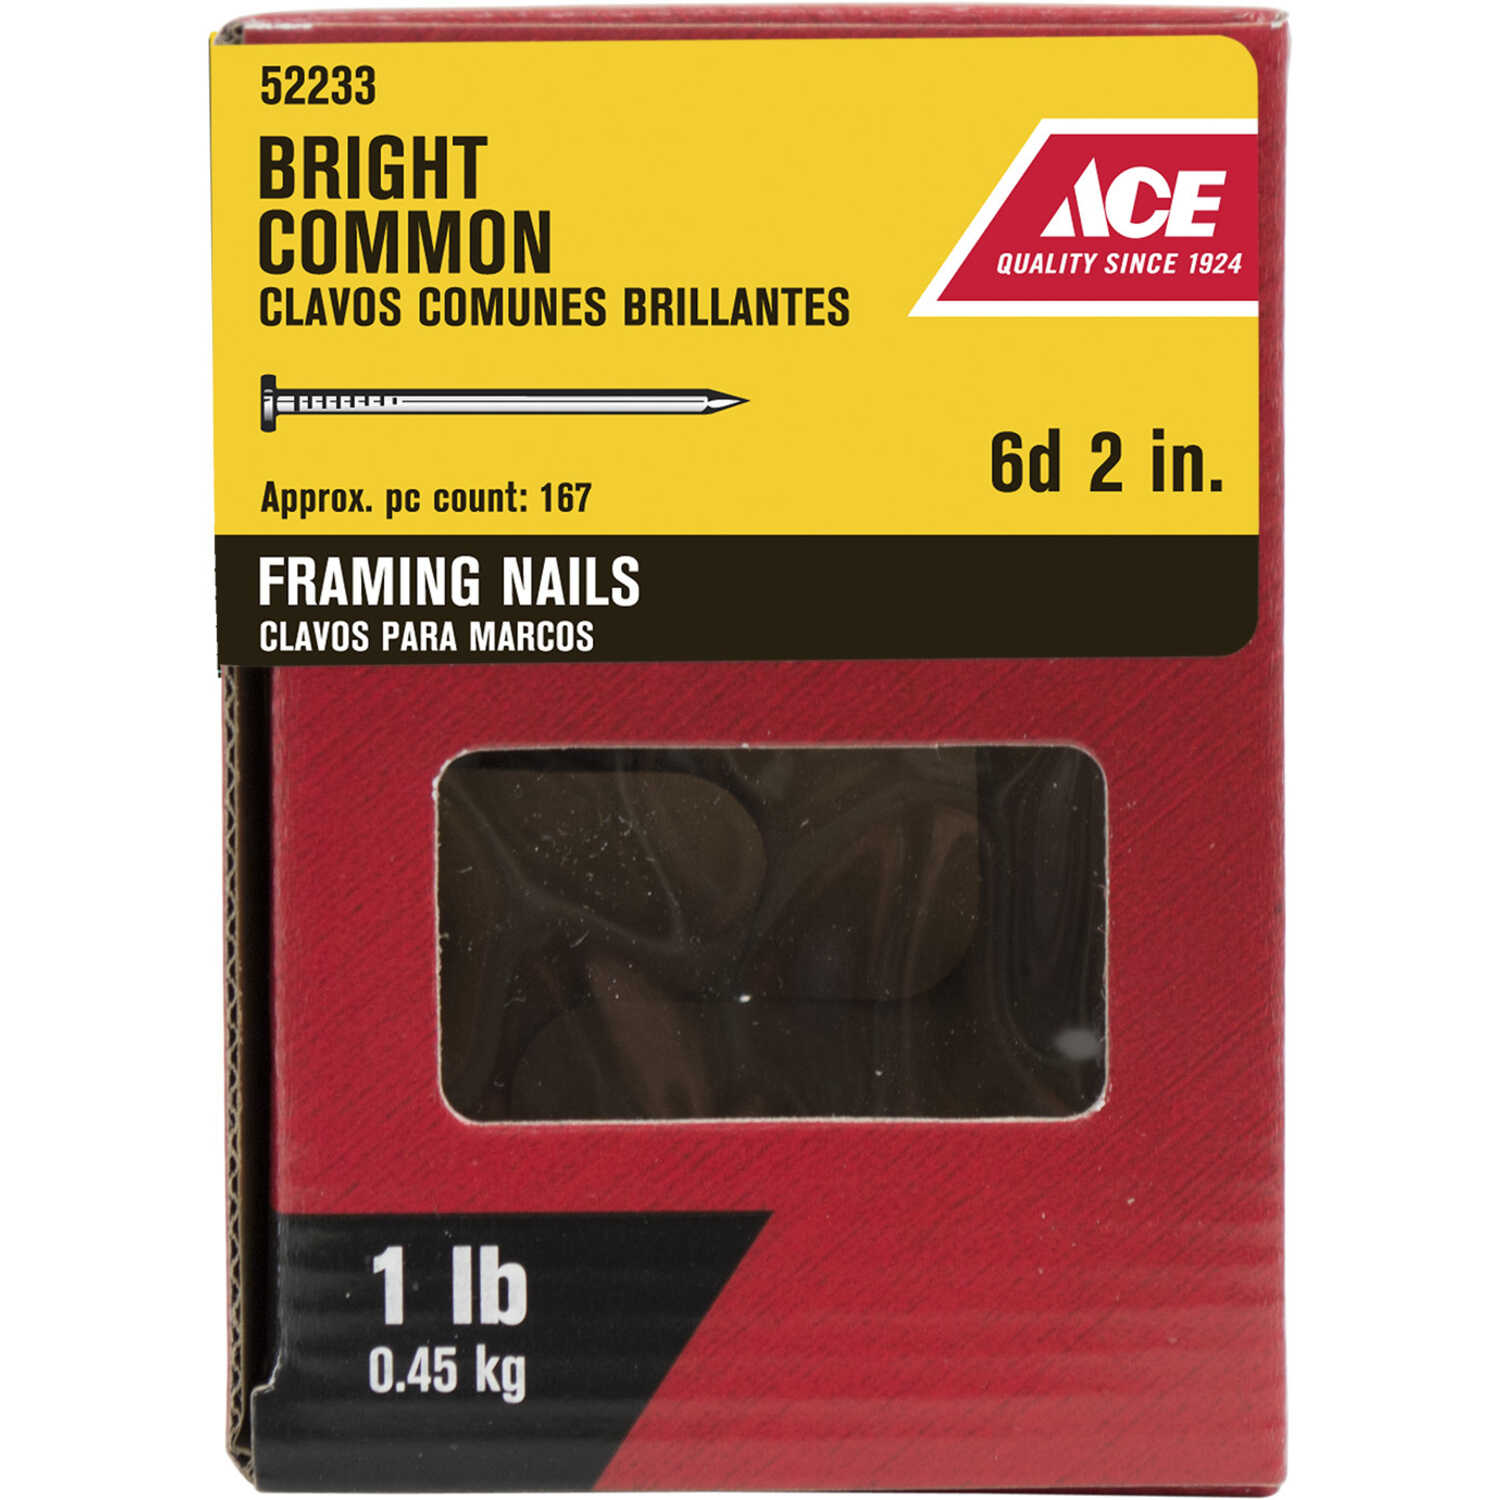 Ace  6D  2 in. L Common  Bright  Steel  Nail  Smooth Shank  Round  1 lb.